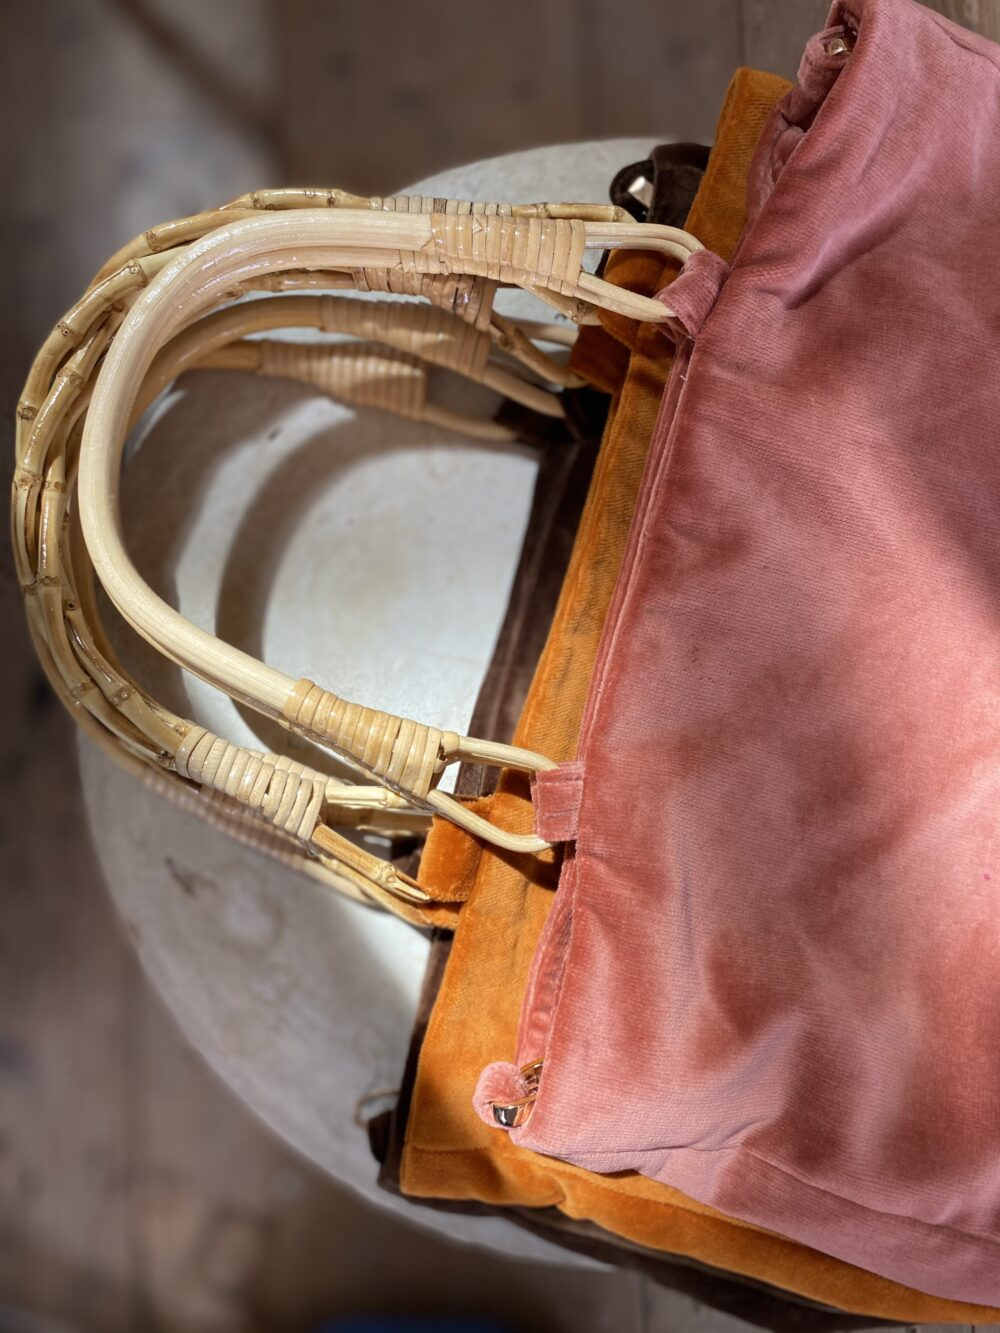 The-bamboo-hand-bag-colors-novembreatelier